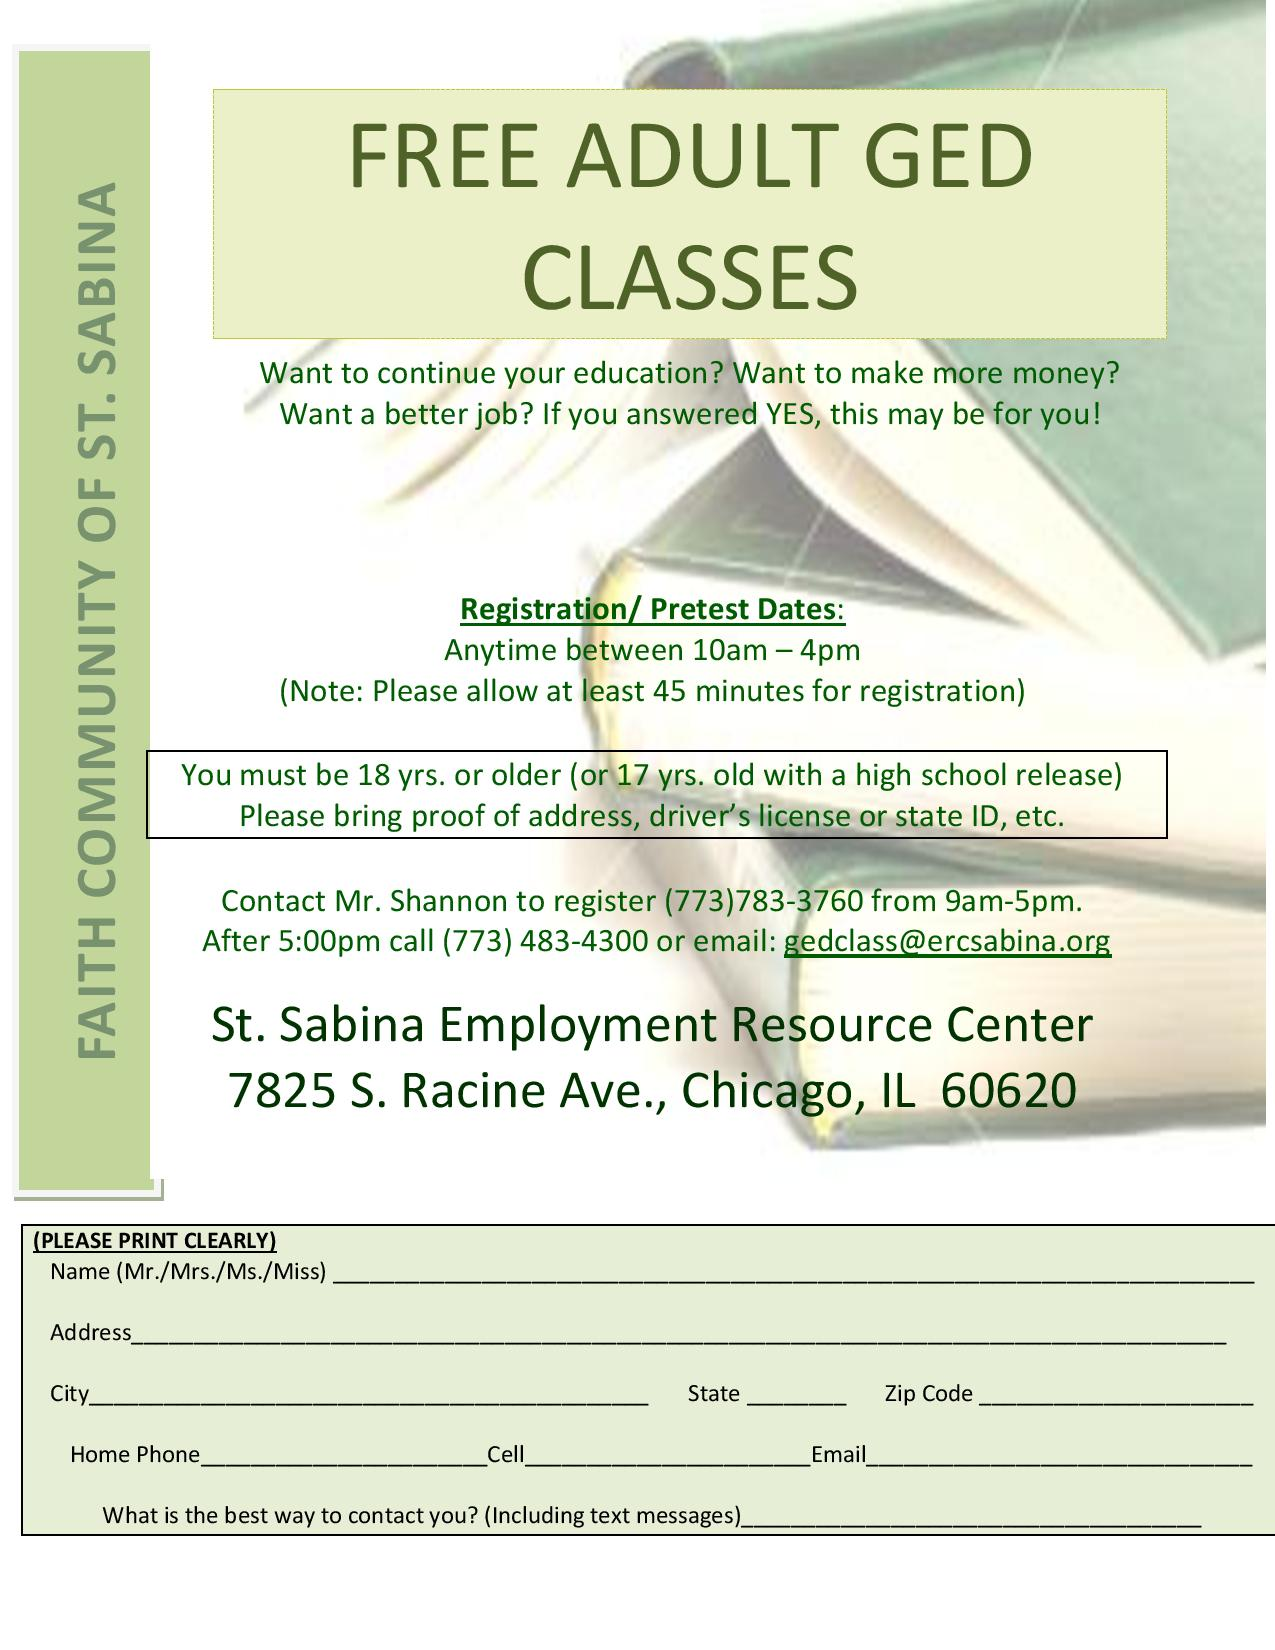 FREE GED Flyer -  Kennedy King Class-page-001.jpg